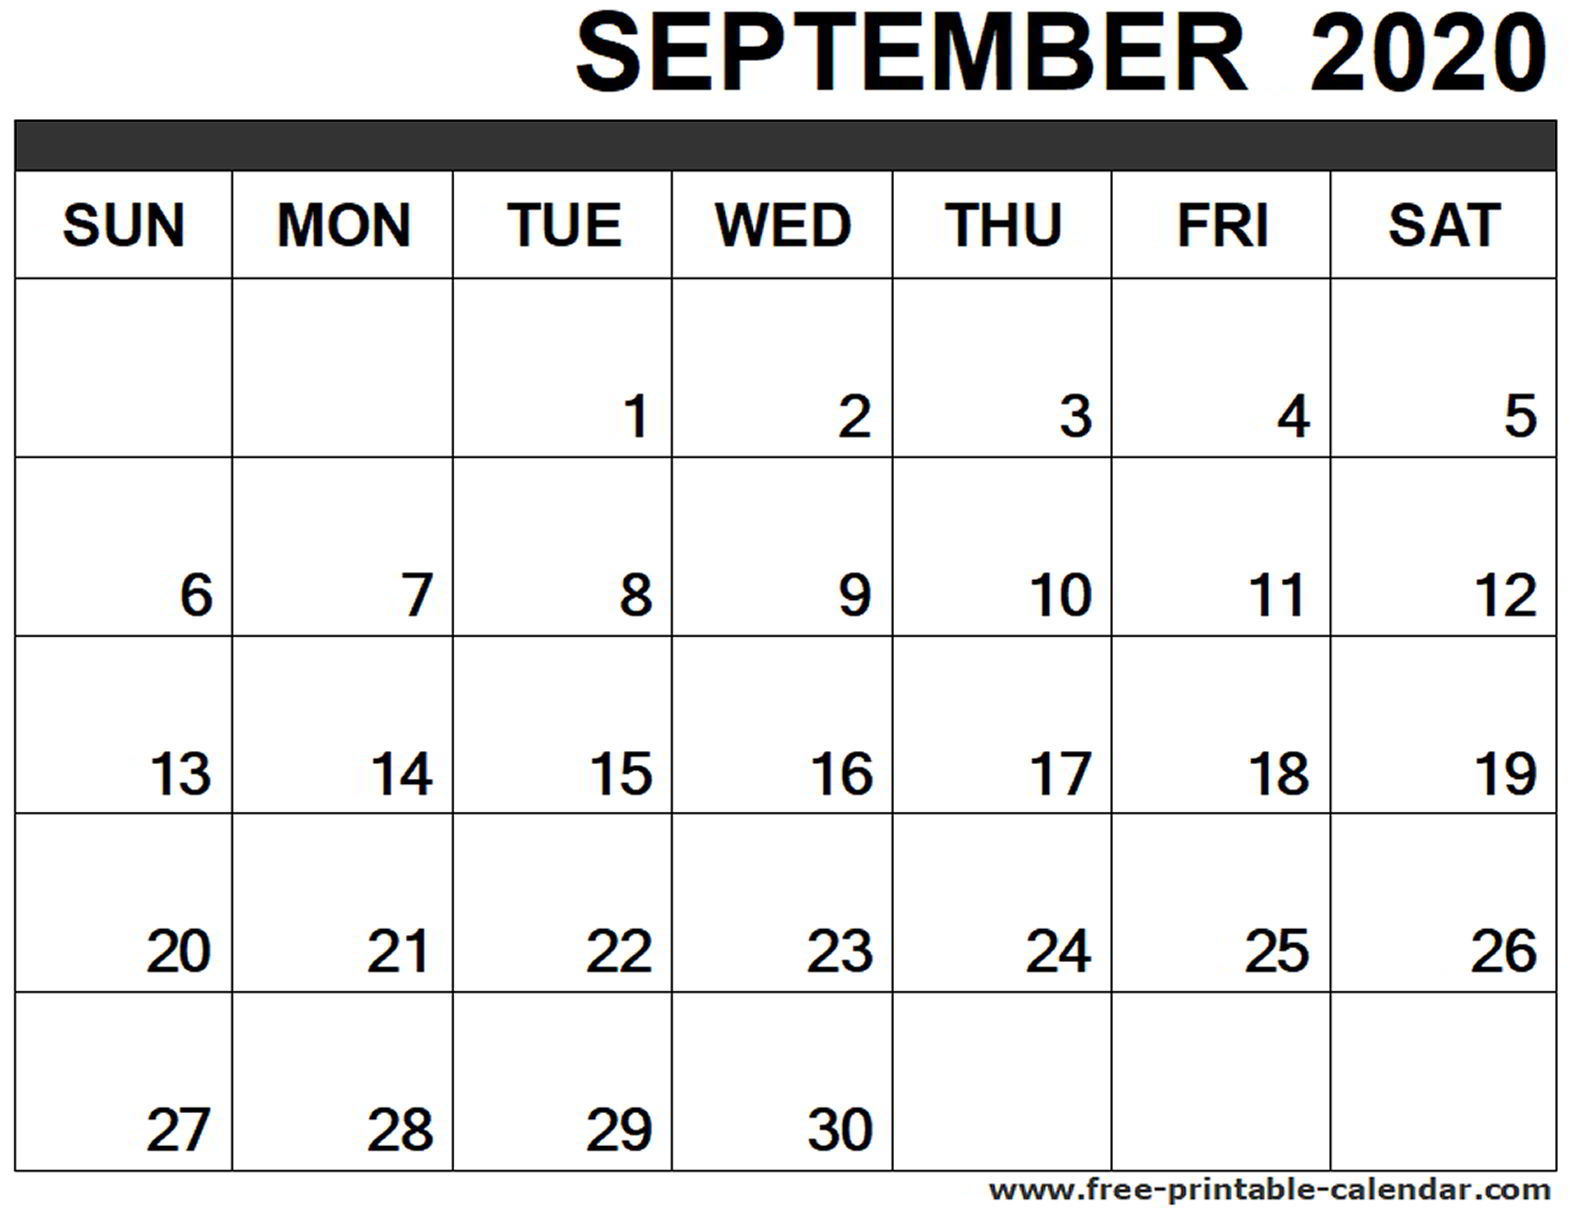 September 2020 Calendar Printable  Freeprintablecalendar intended for Calendar August And September 2020